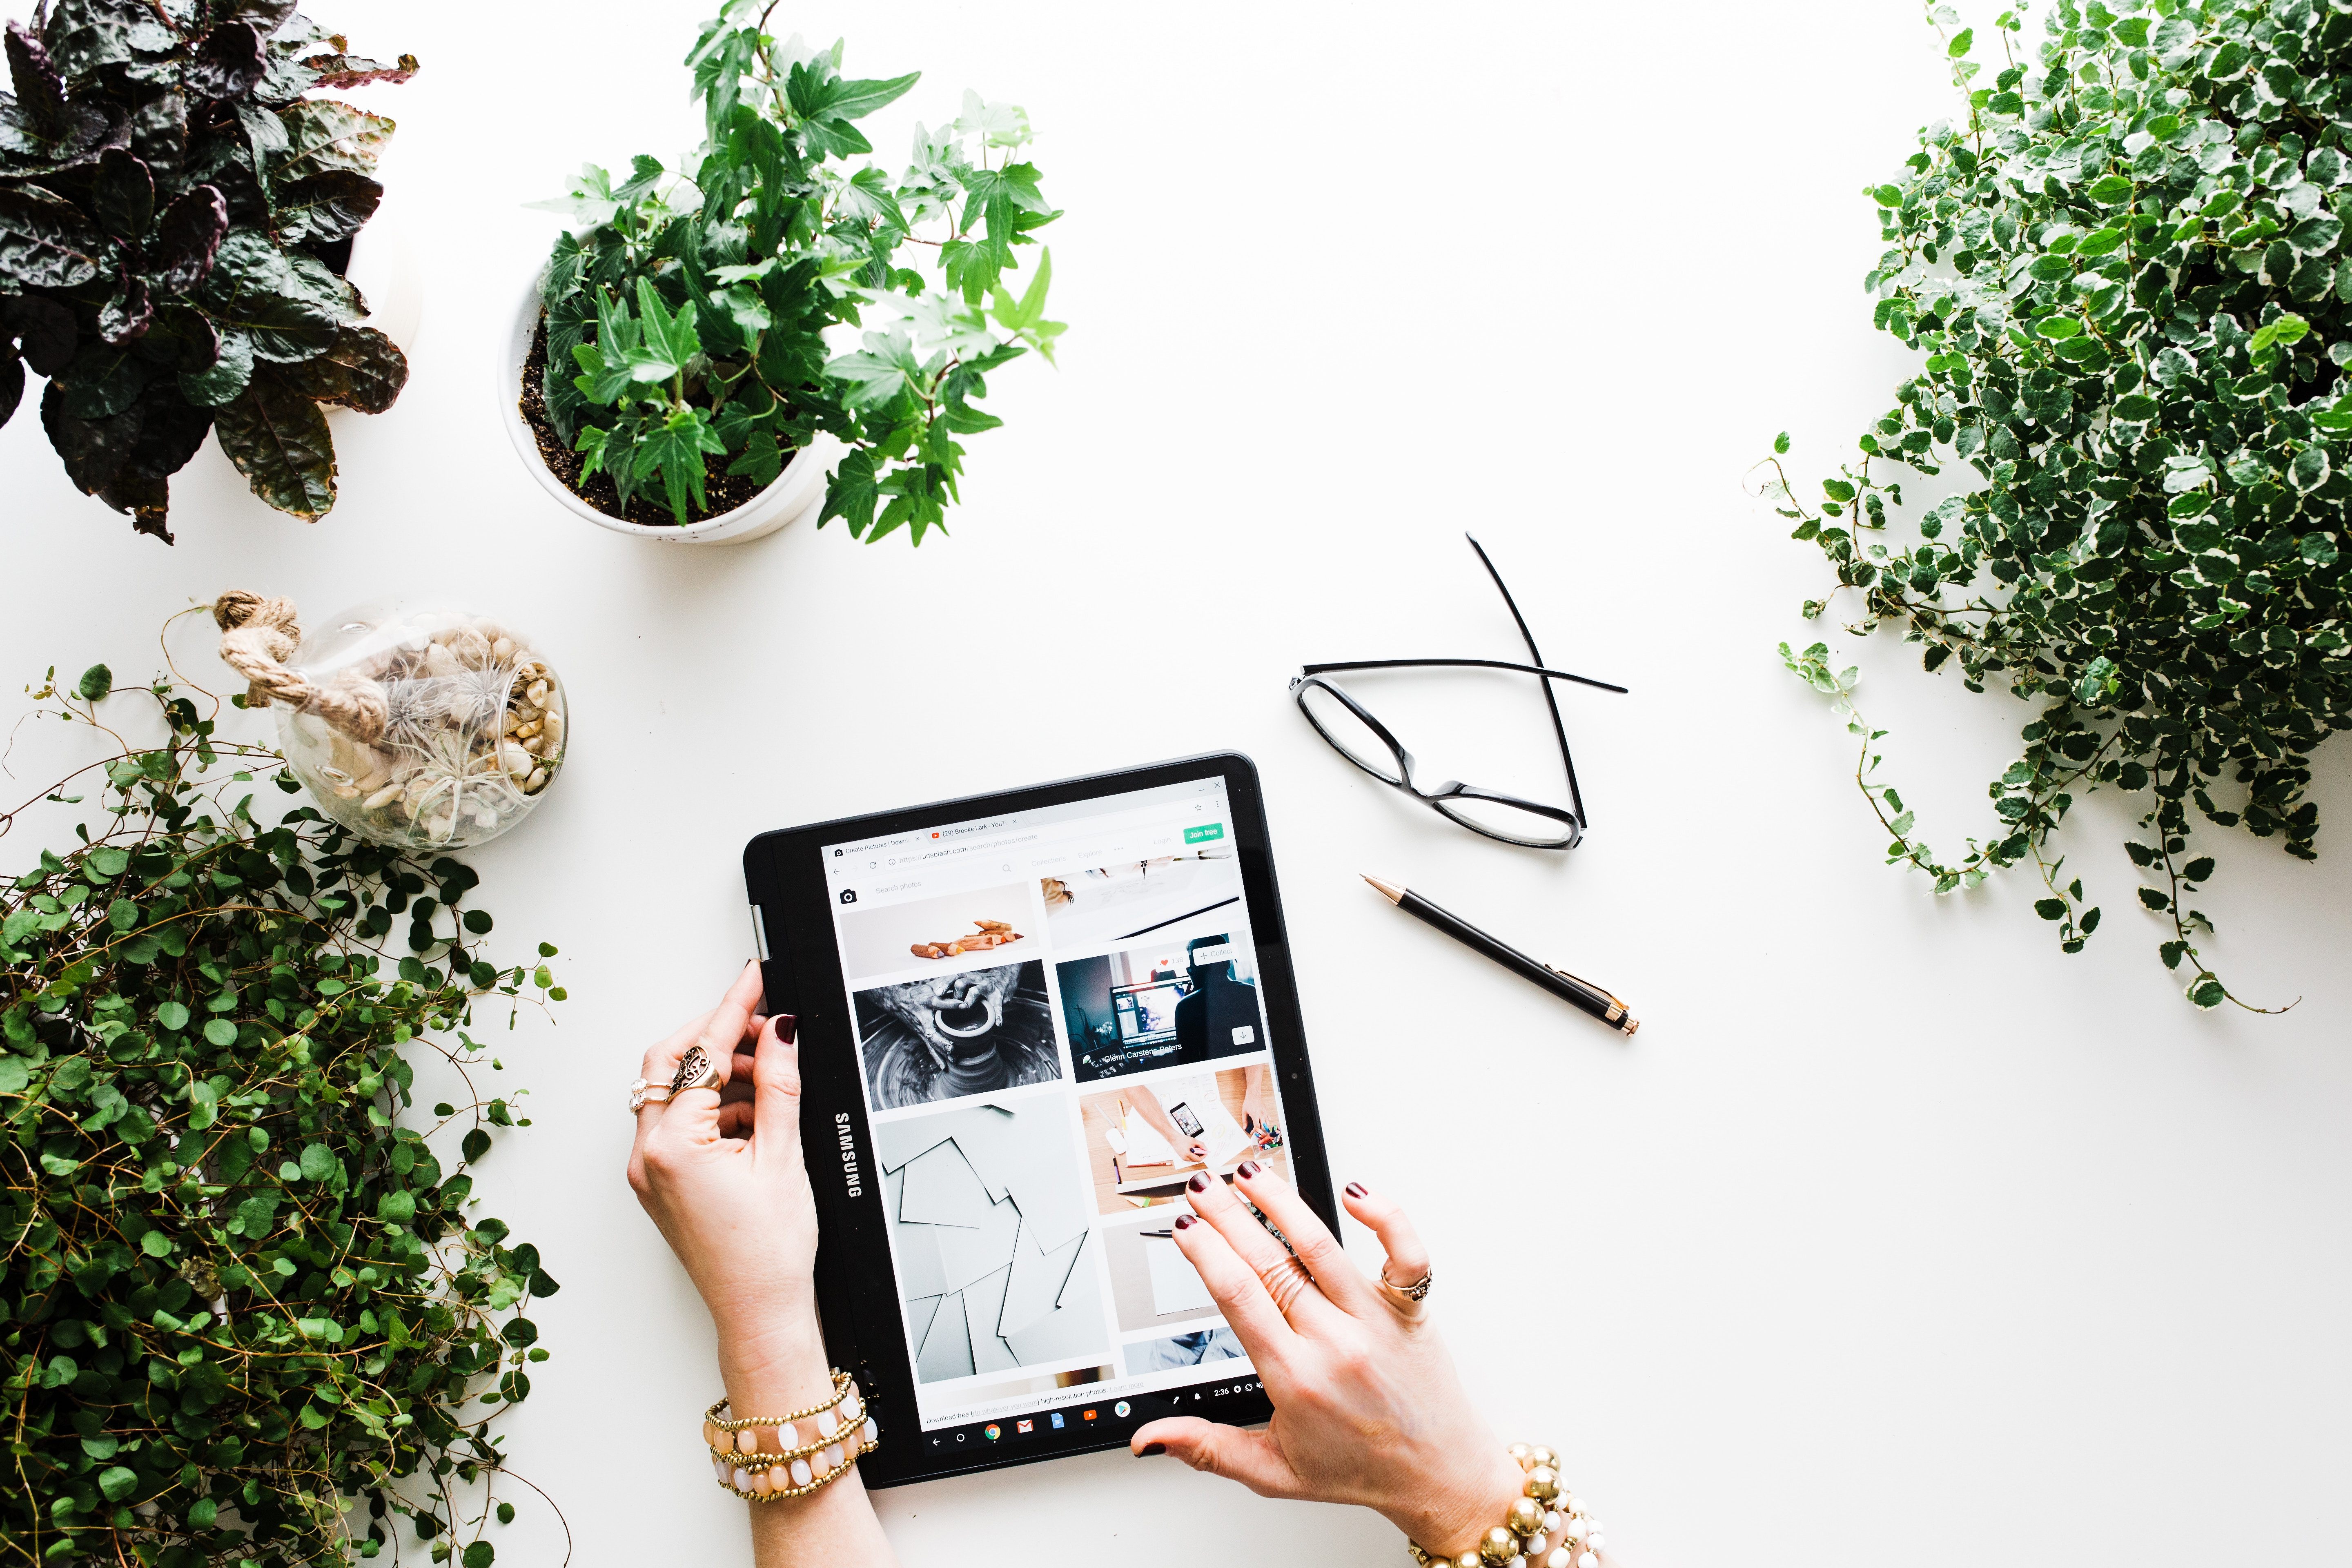 Women browsing images on a tablet, while surrounded by potted plants